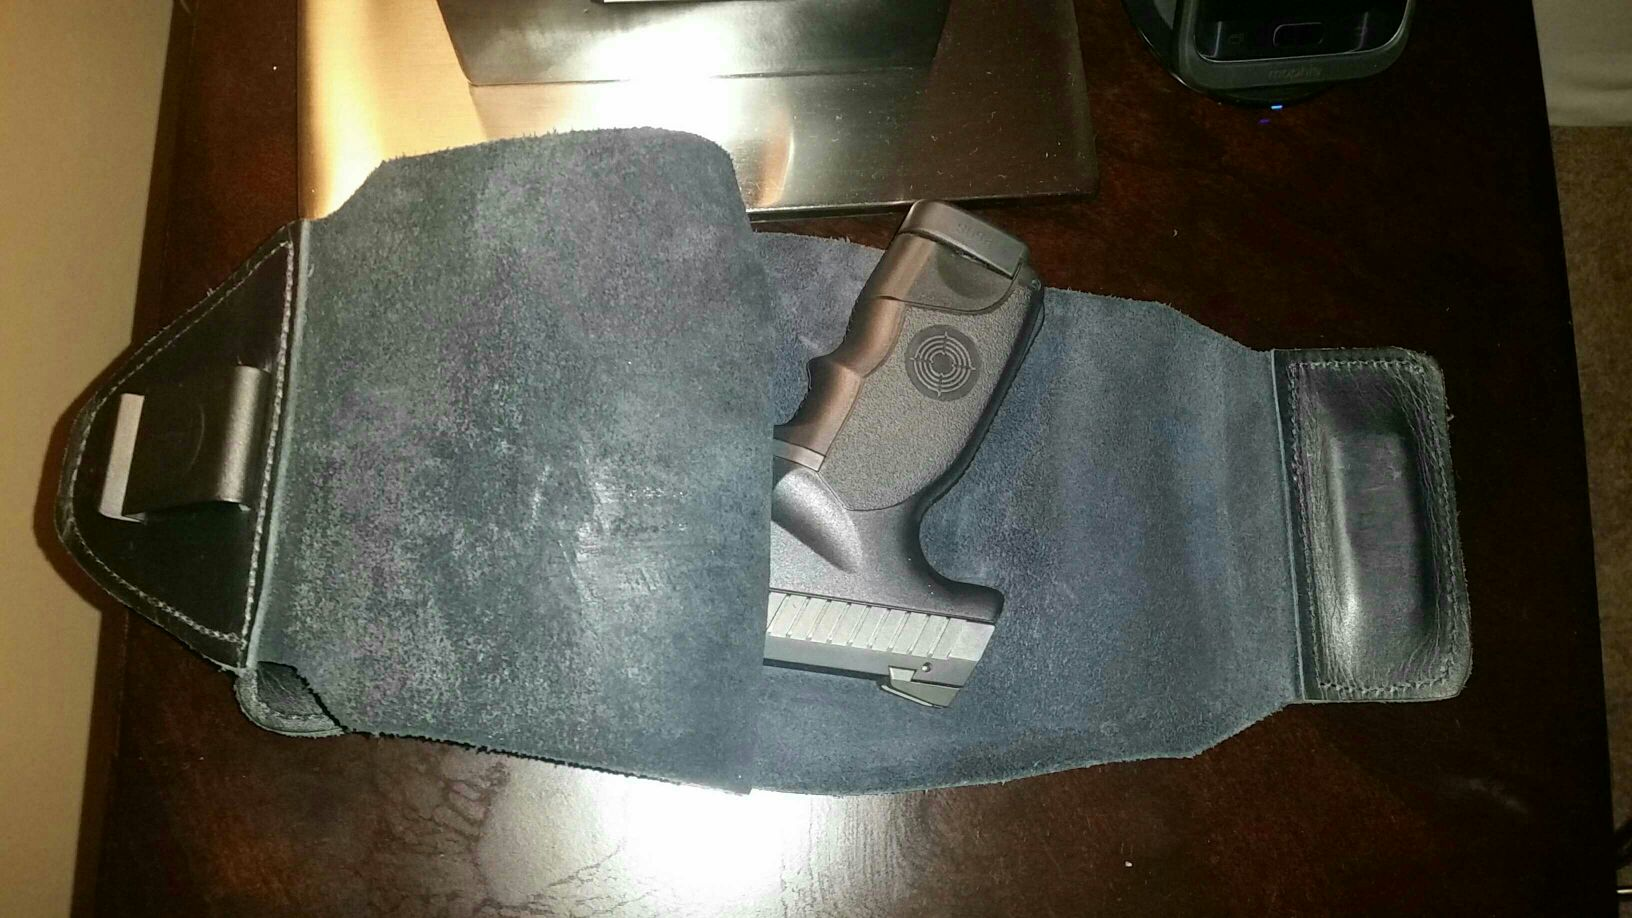 Urban carry holster - 1 3